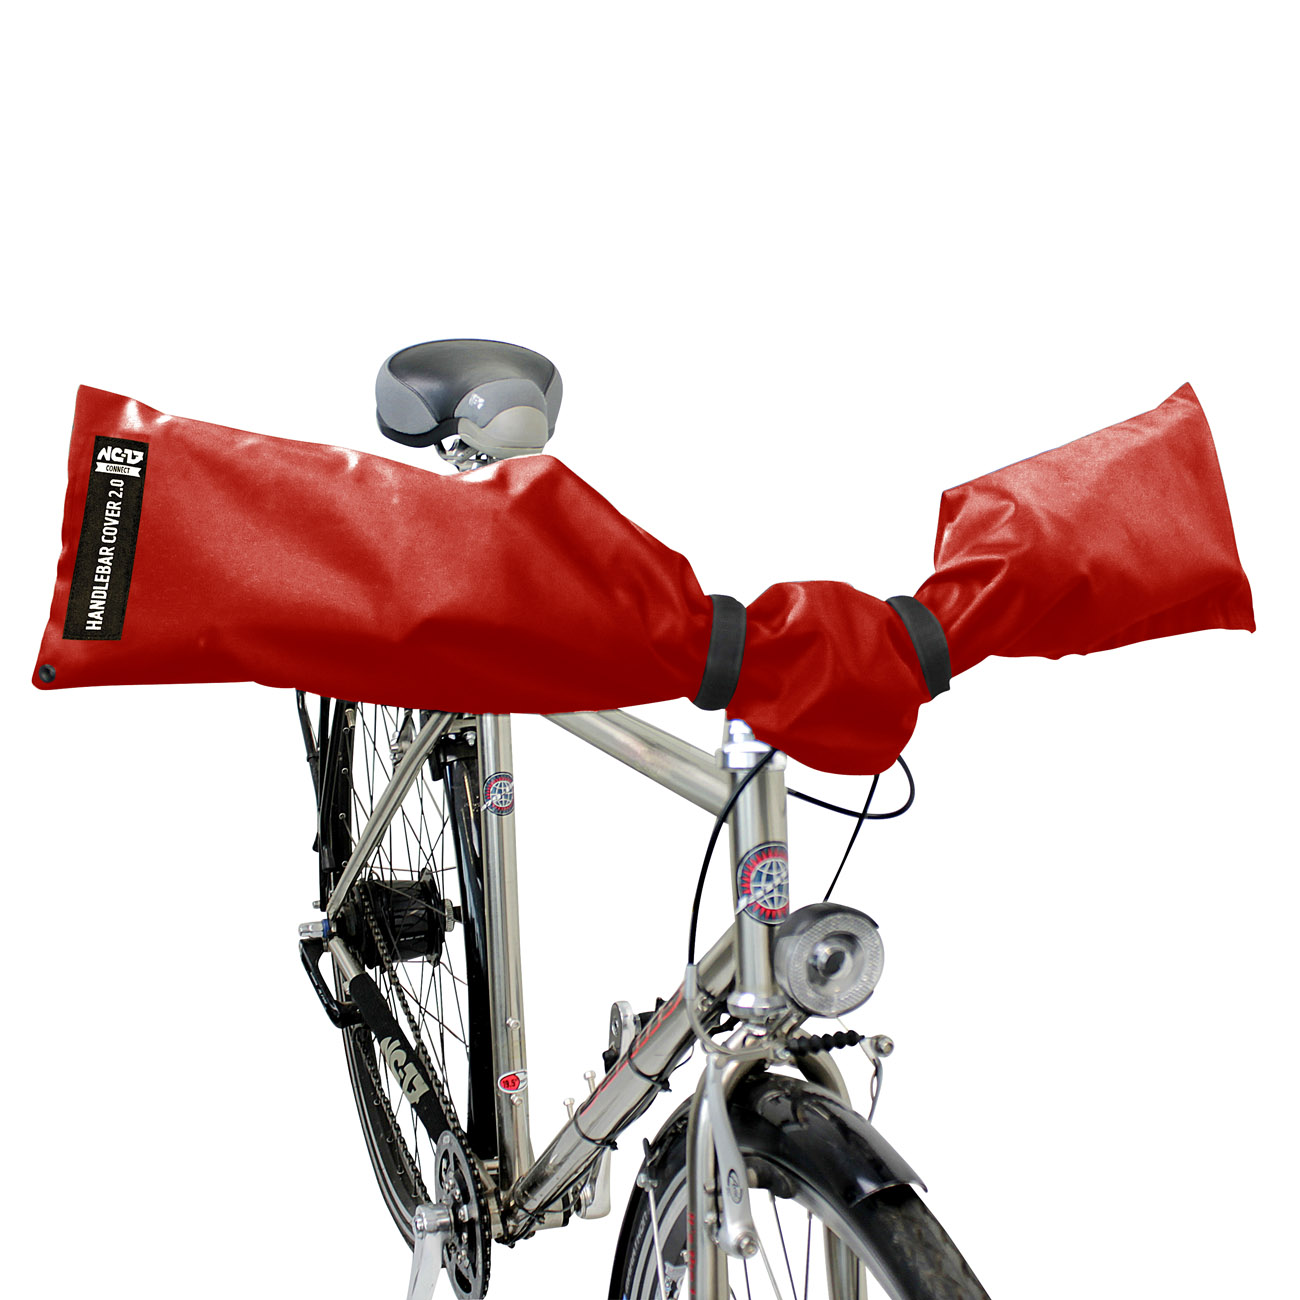 NC-17 Connect Handlebar Cover 2.0<br/>Für Lenker, one size fits all, rot<br/>